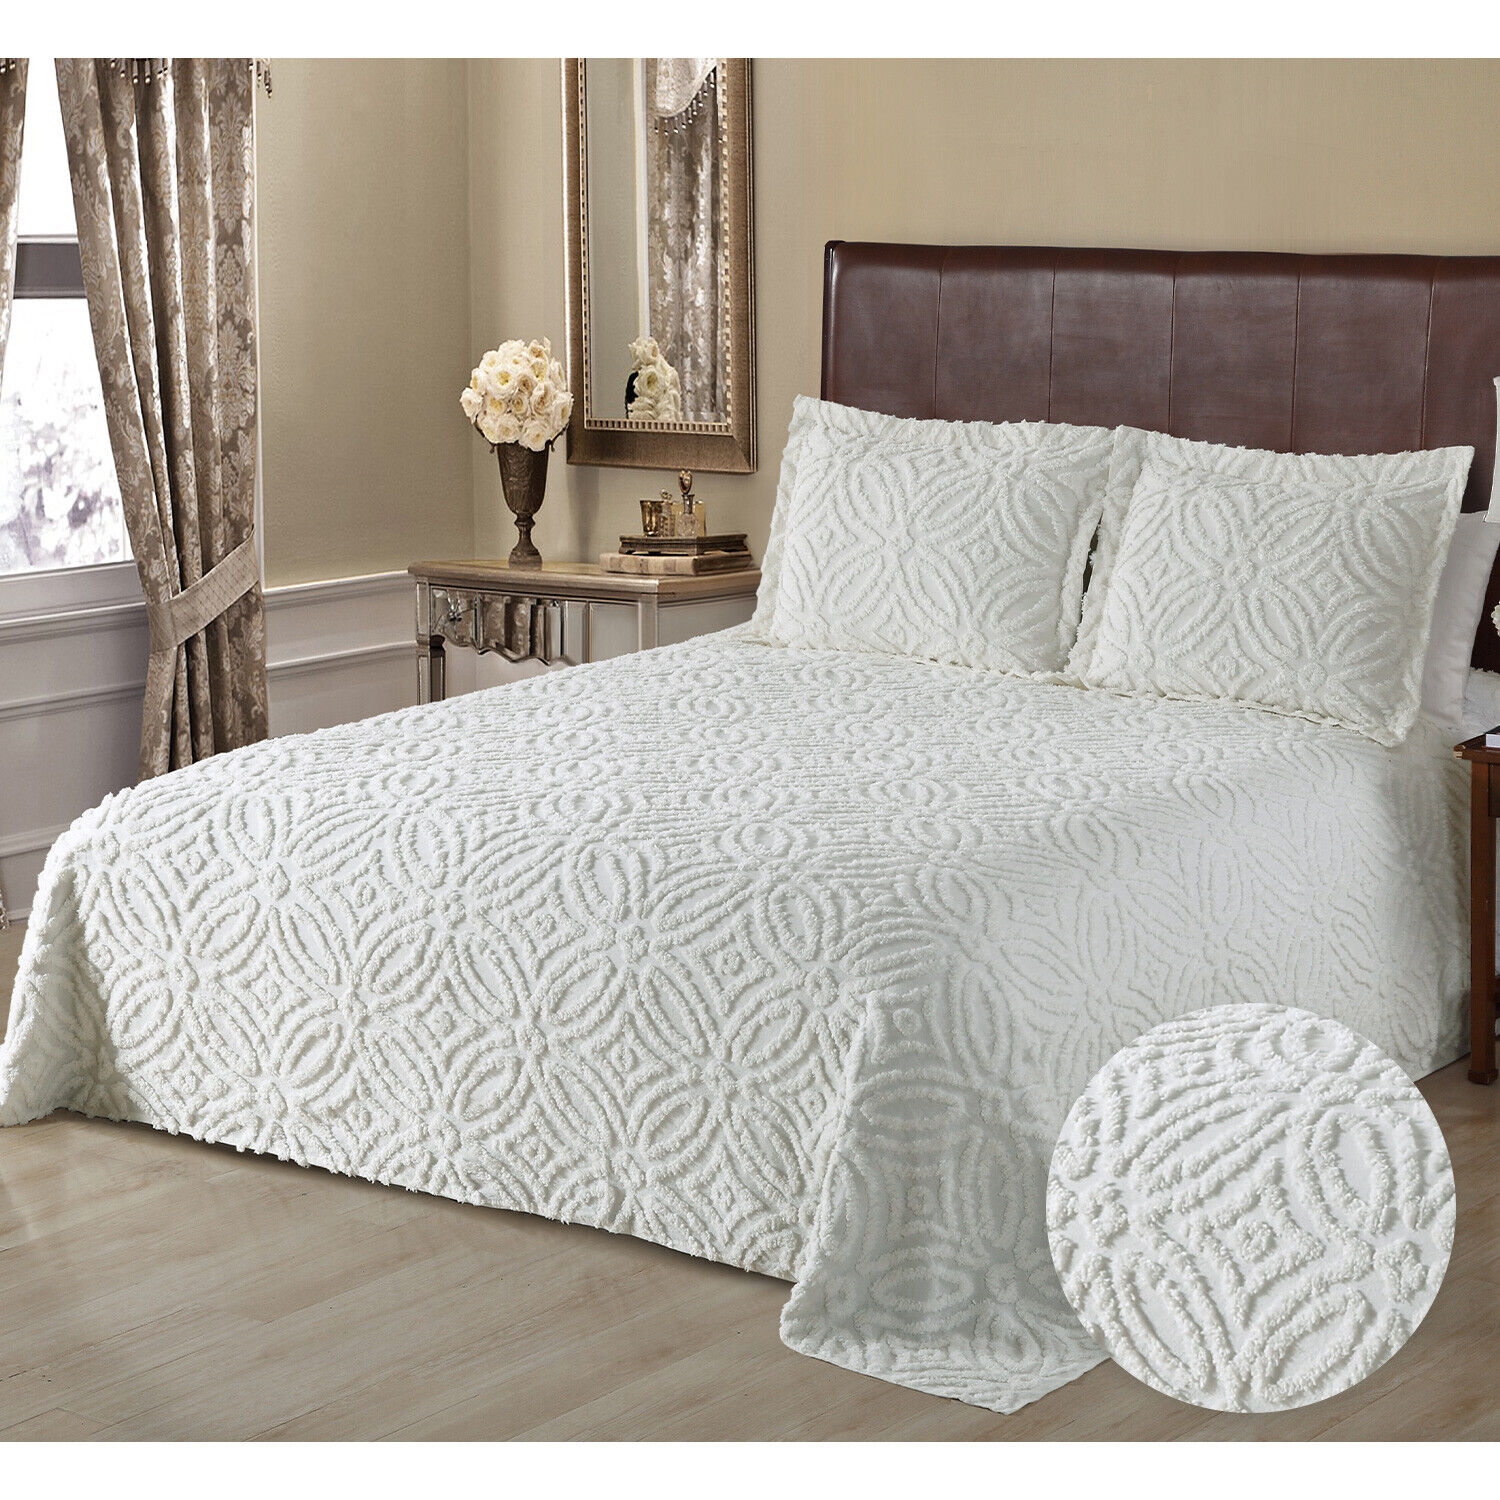 100% Cotton Wedding Ring Chenille Bedspread or Sham Full Queen King, Ivory Bedding